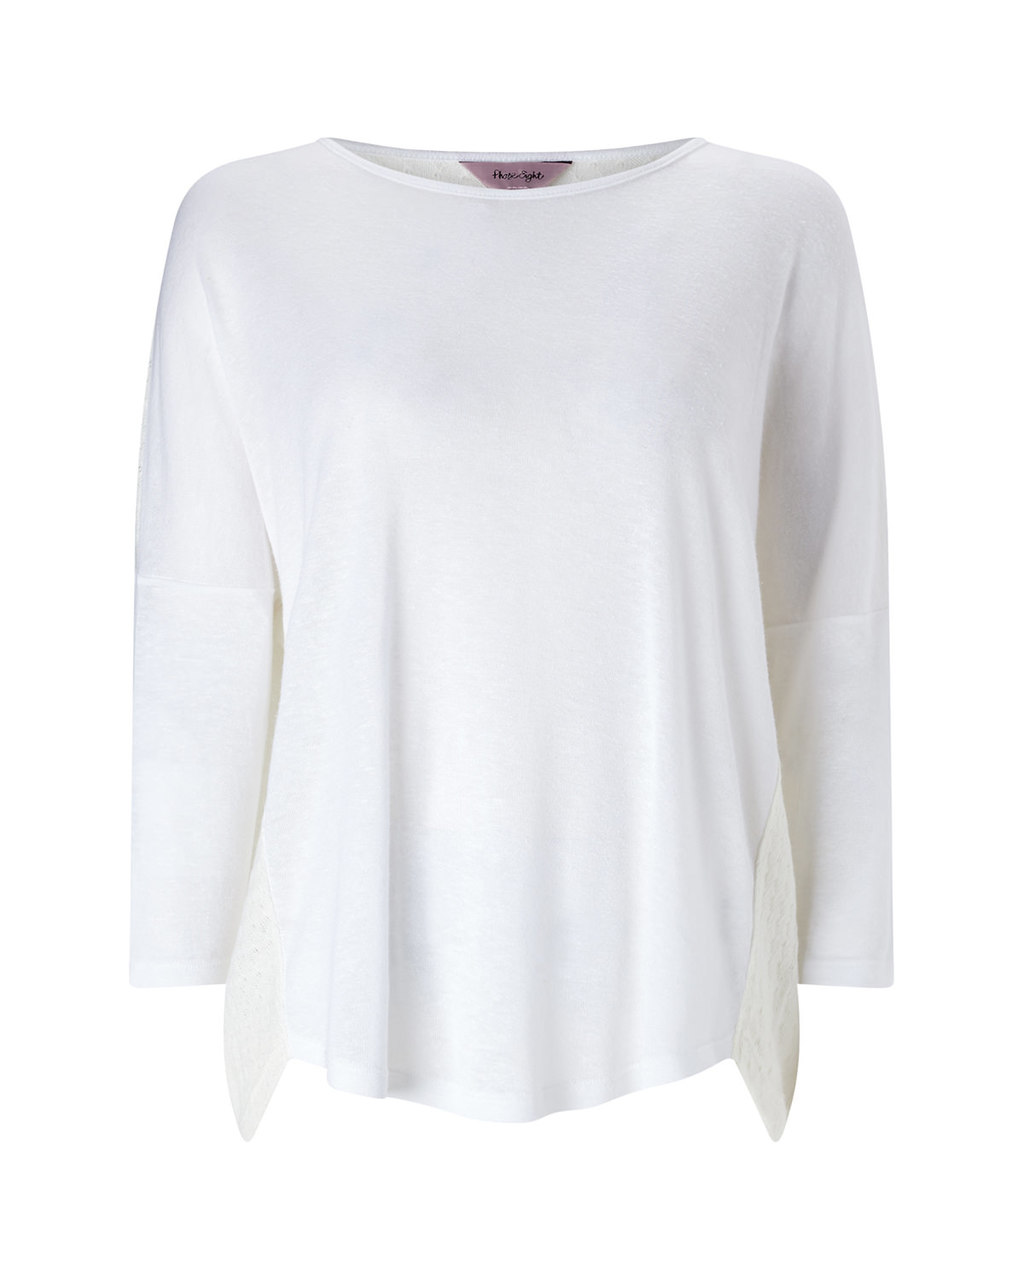 Terrie Textured Back Top - neckline: slash/boat neckline; sleeve style: dolman/batwing; pattern: plain; style: t-shirt; predominant colour: ivory/cream; occasions: casual; length: standard; fibres: cotton - stretch; fit: loose; sleeve length: 3/4 length; pattern type: fabric; texture group: jersey - stretchy/drapey; season: a/w 2015; wardrobe: basic